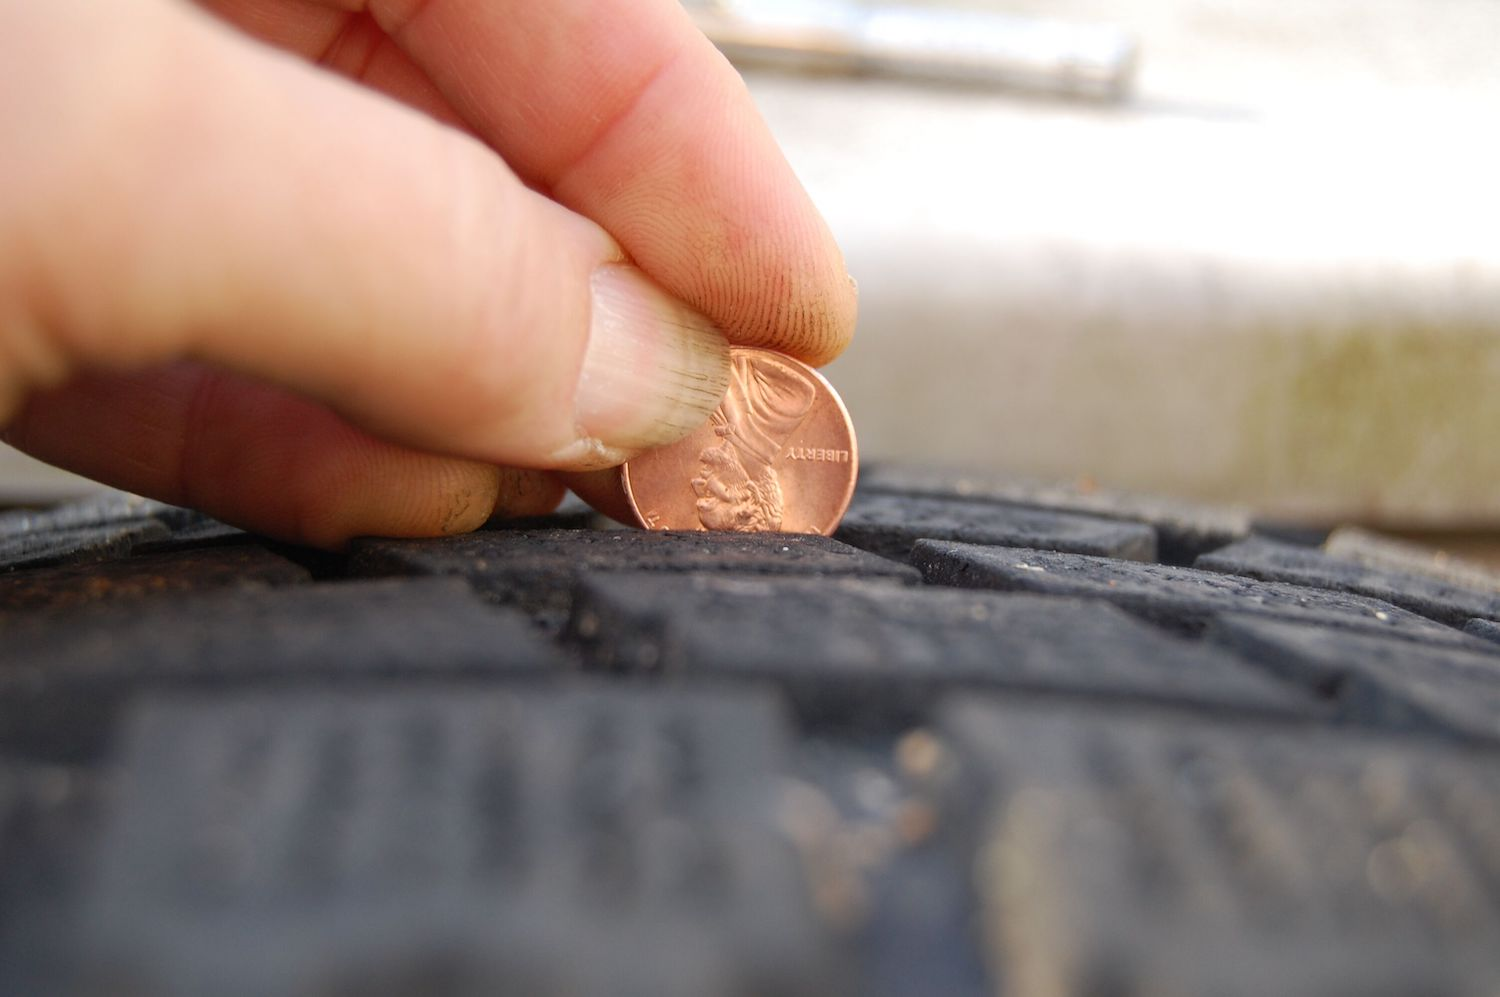 Penny in tire tread